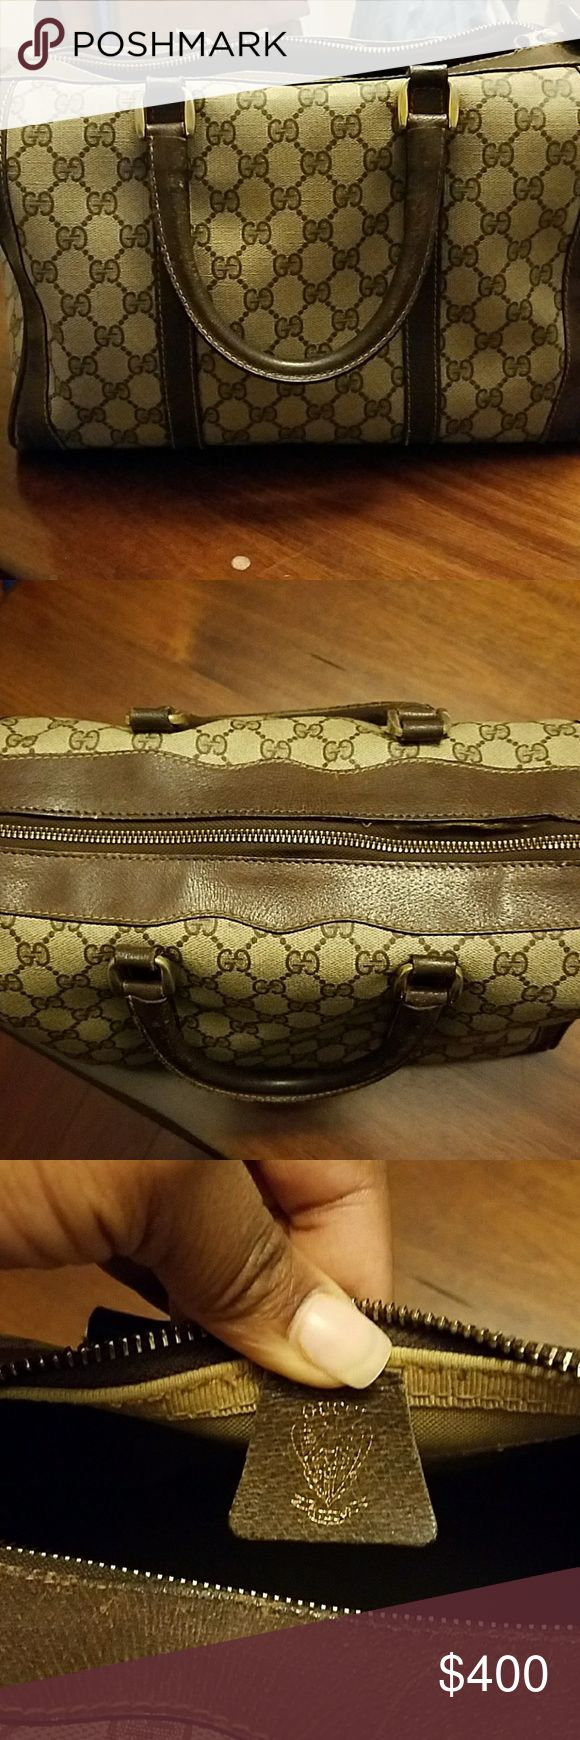 """Authentic Vintage Gucci Bag Brown monogram Boston Bag with Gold hardware  13""""L x 9""""H has patina along trimming and is priced accordingly. This was my very first Gucci bag so it is a bit wore but can be restored. Price is negotiable Gucci Bags"""